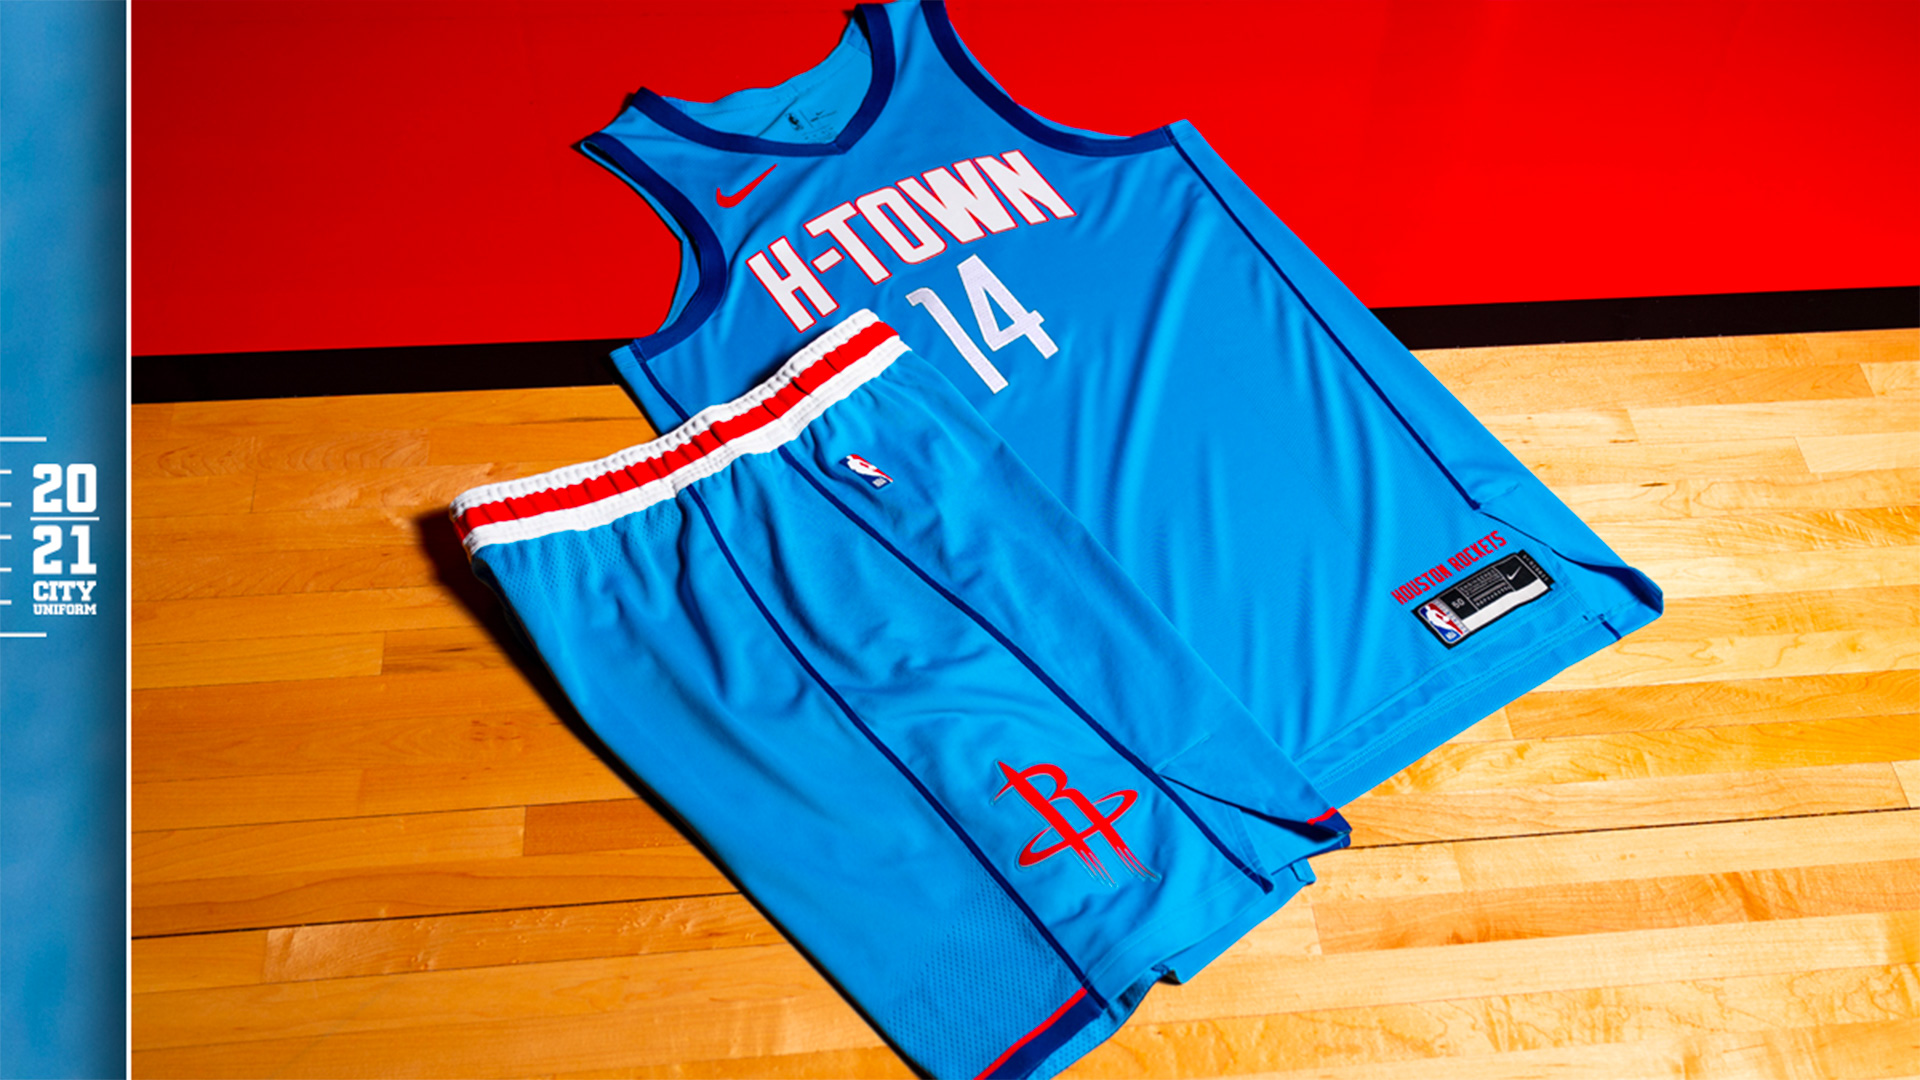 Rockets unveil 'H-Town' City Edition uniforms for 2020-21